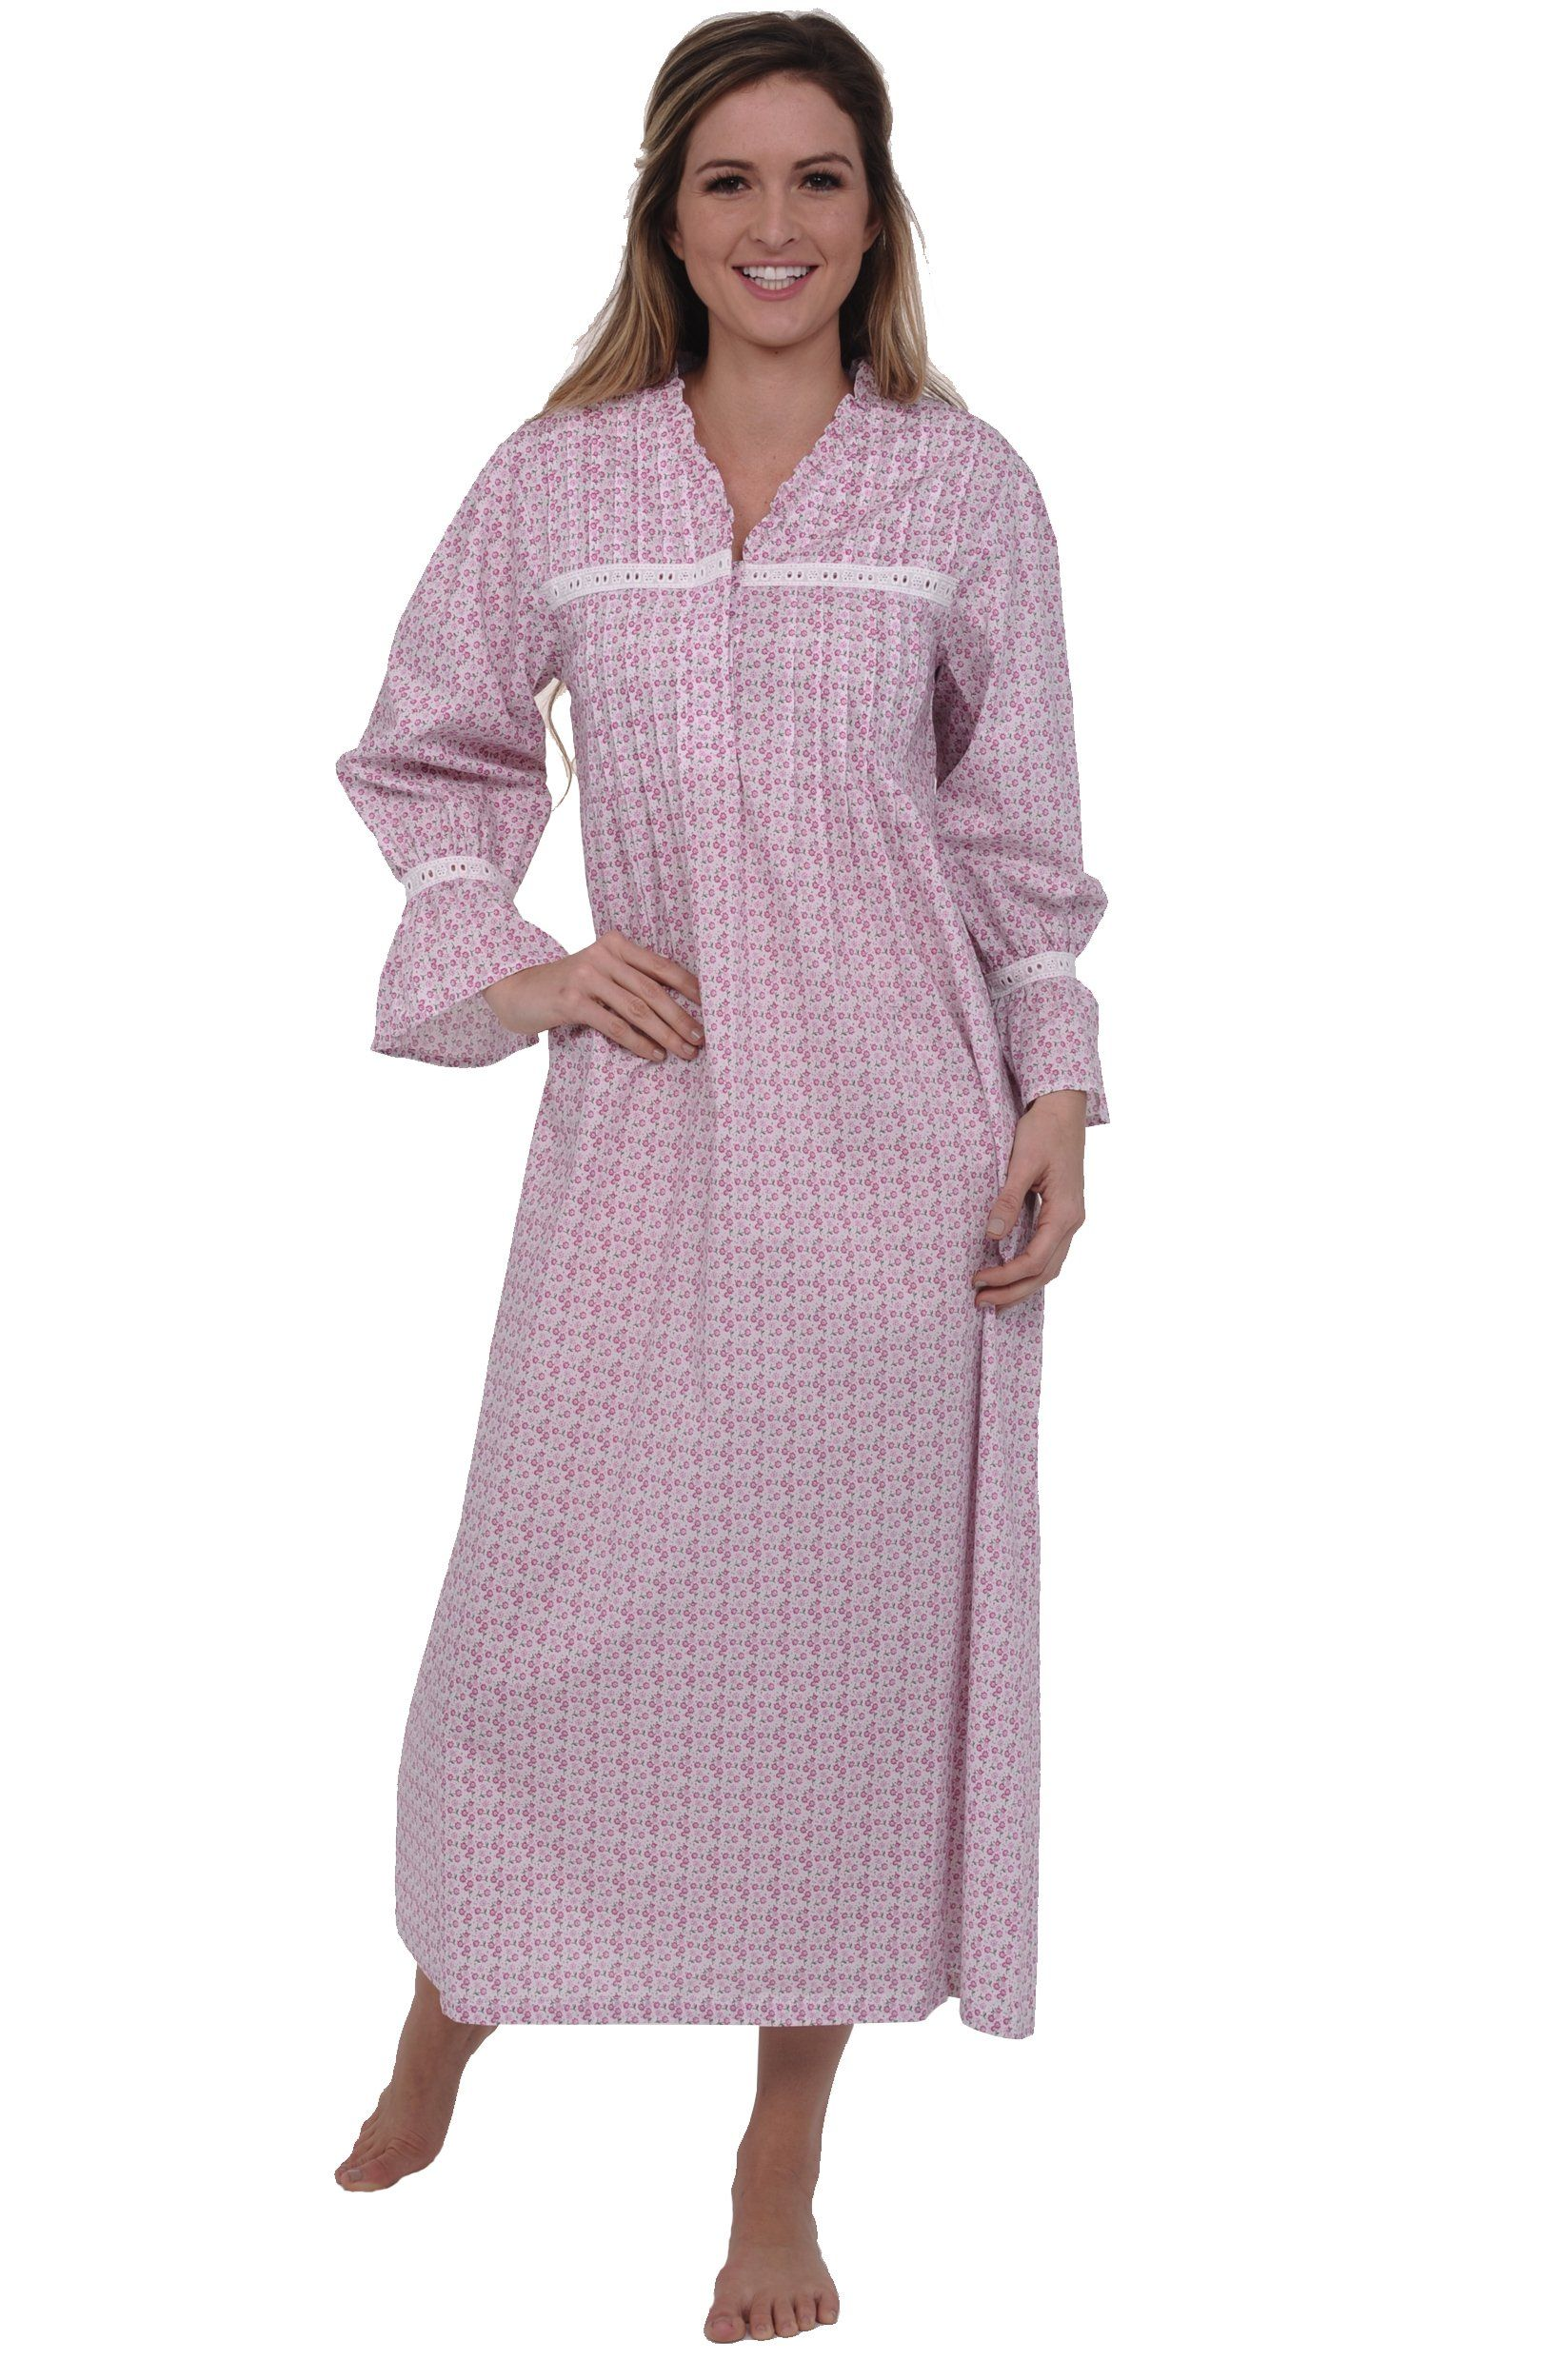 Alexander Del Rossa Women's Romeo and Juliet Bell Sleeve Victorian Nightgown at Amazon Women's Clothing store: White Night Gown